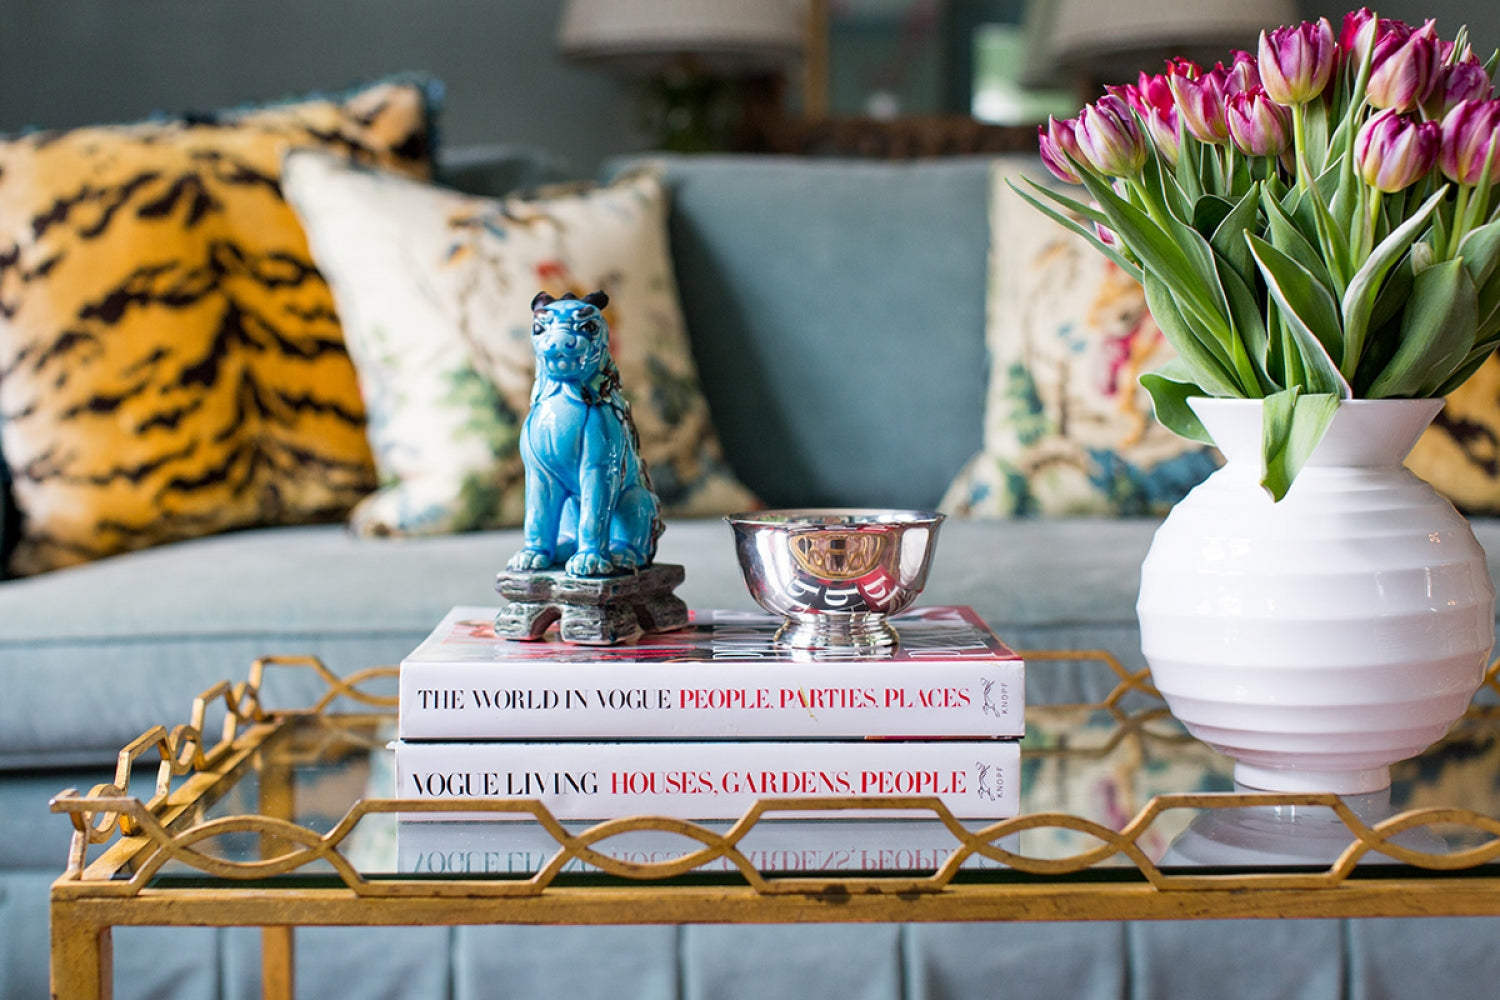 "<a href=""https://mallorymathison.com/"" target=""_blank"">Mallory Mathison</a> knows her book covers and picked the perfect pairings for this pretty coffee table vignette (image from her website)"